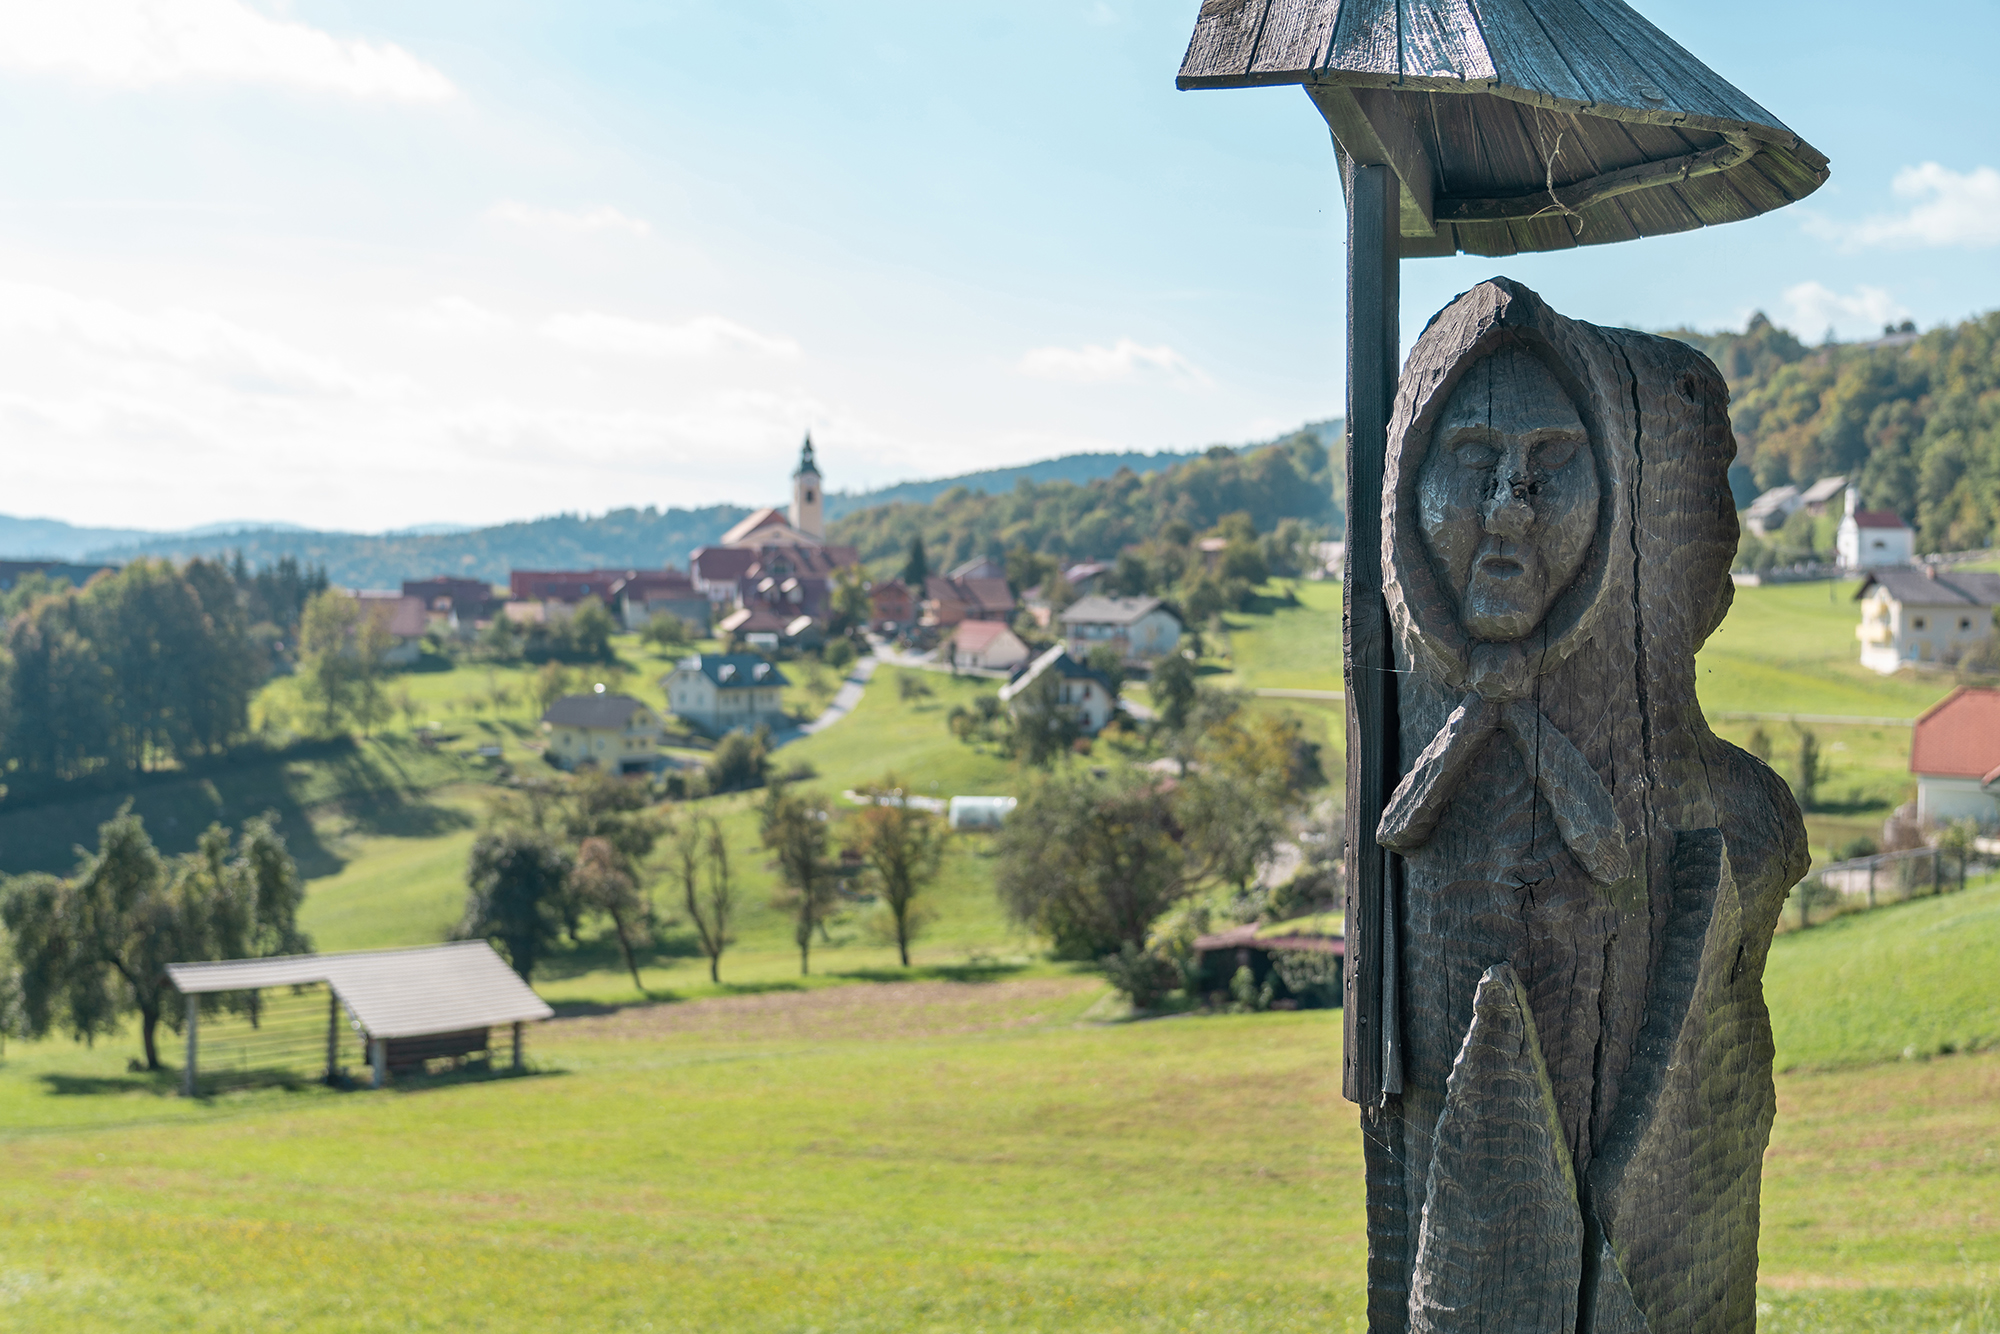 September 29, 2018 - Zasavska Sveta gora: Photo from a hike from Vace to Zasavska Sveta gora in Slovenia - a wooden statue near village Vace, Litija.